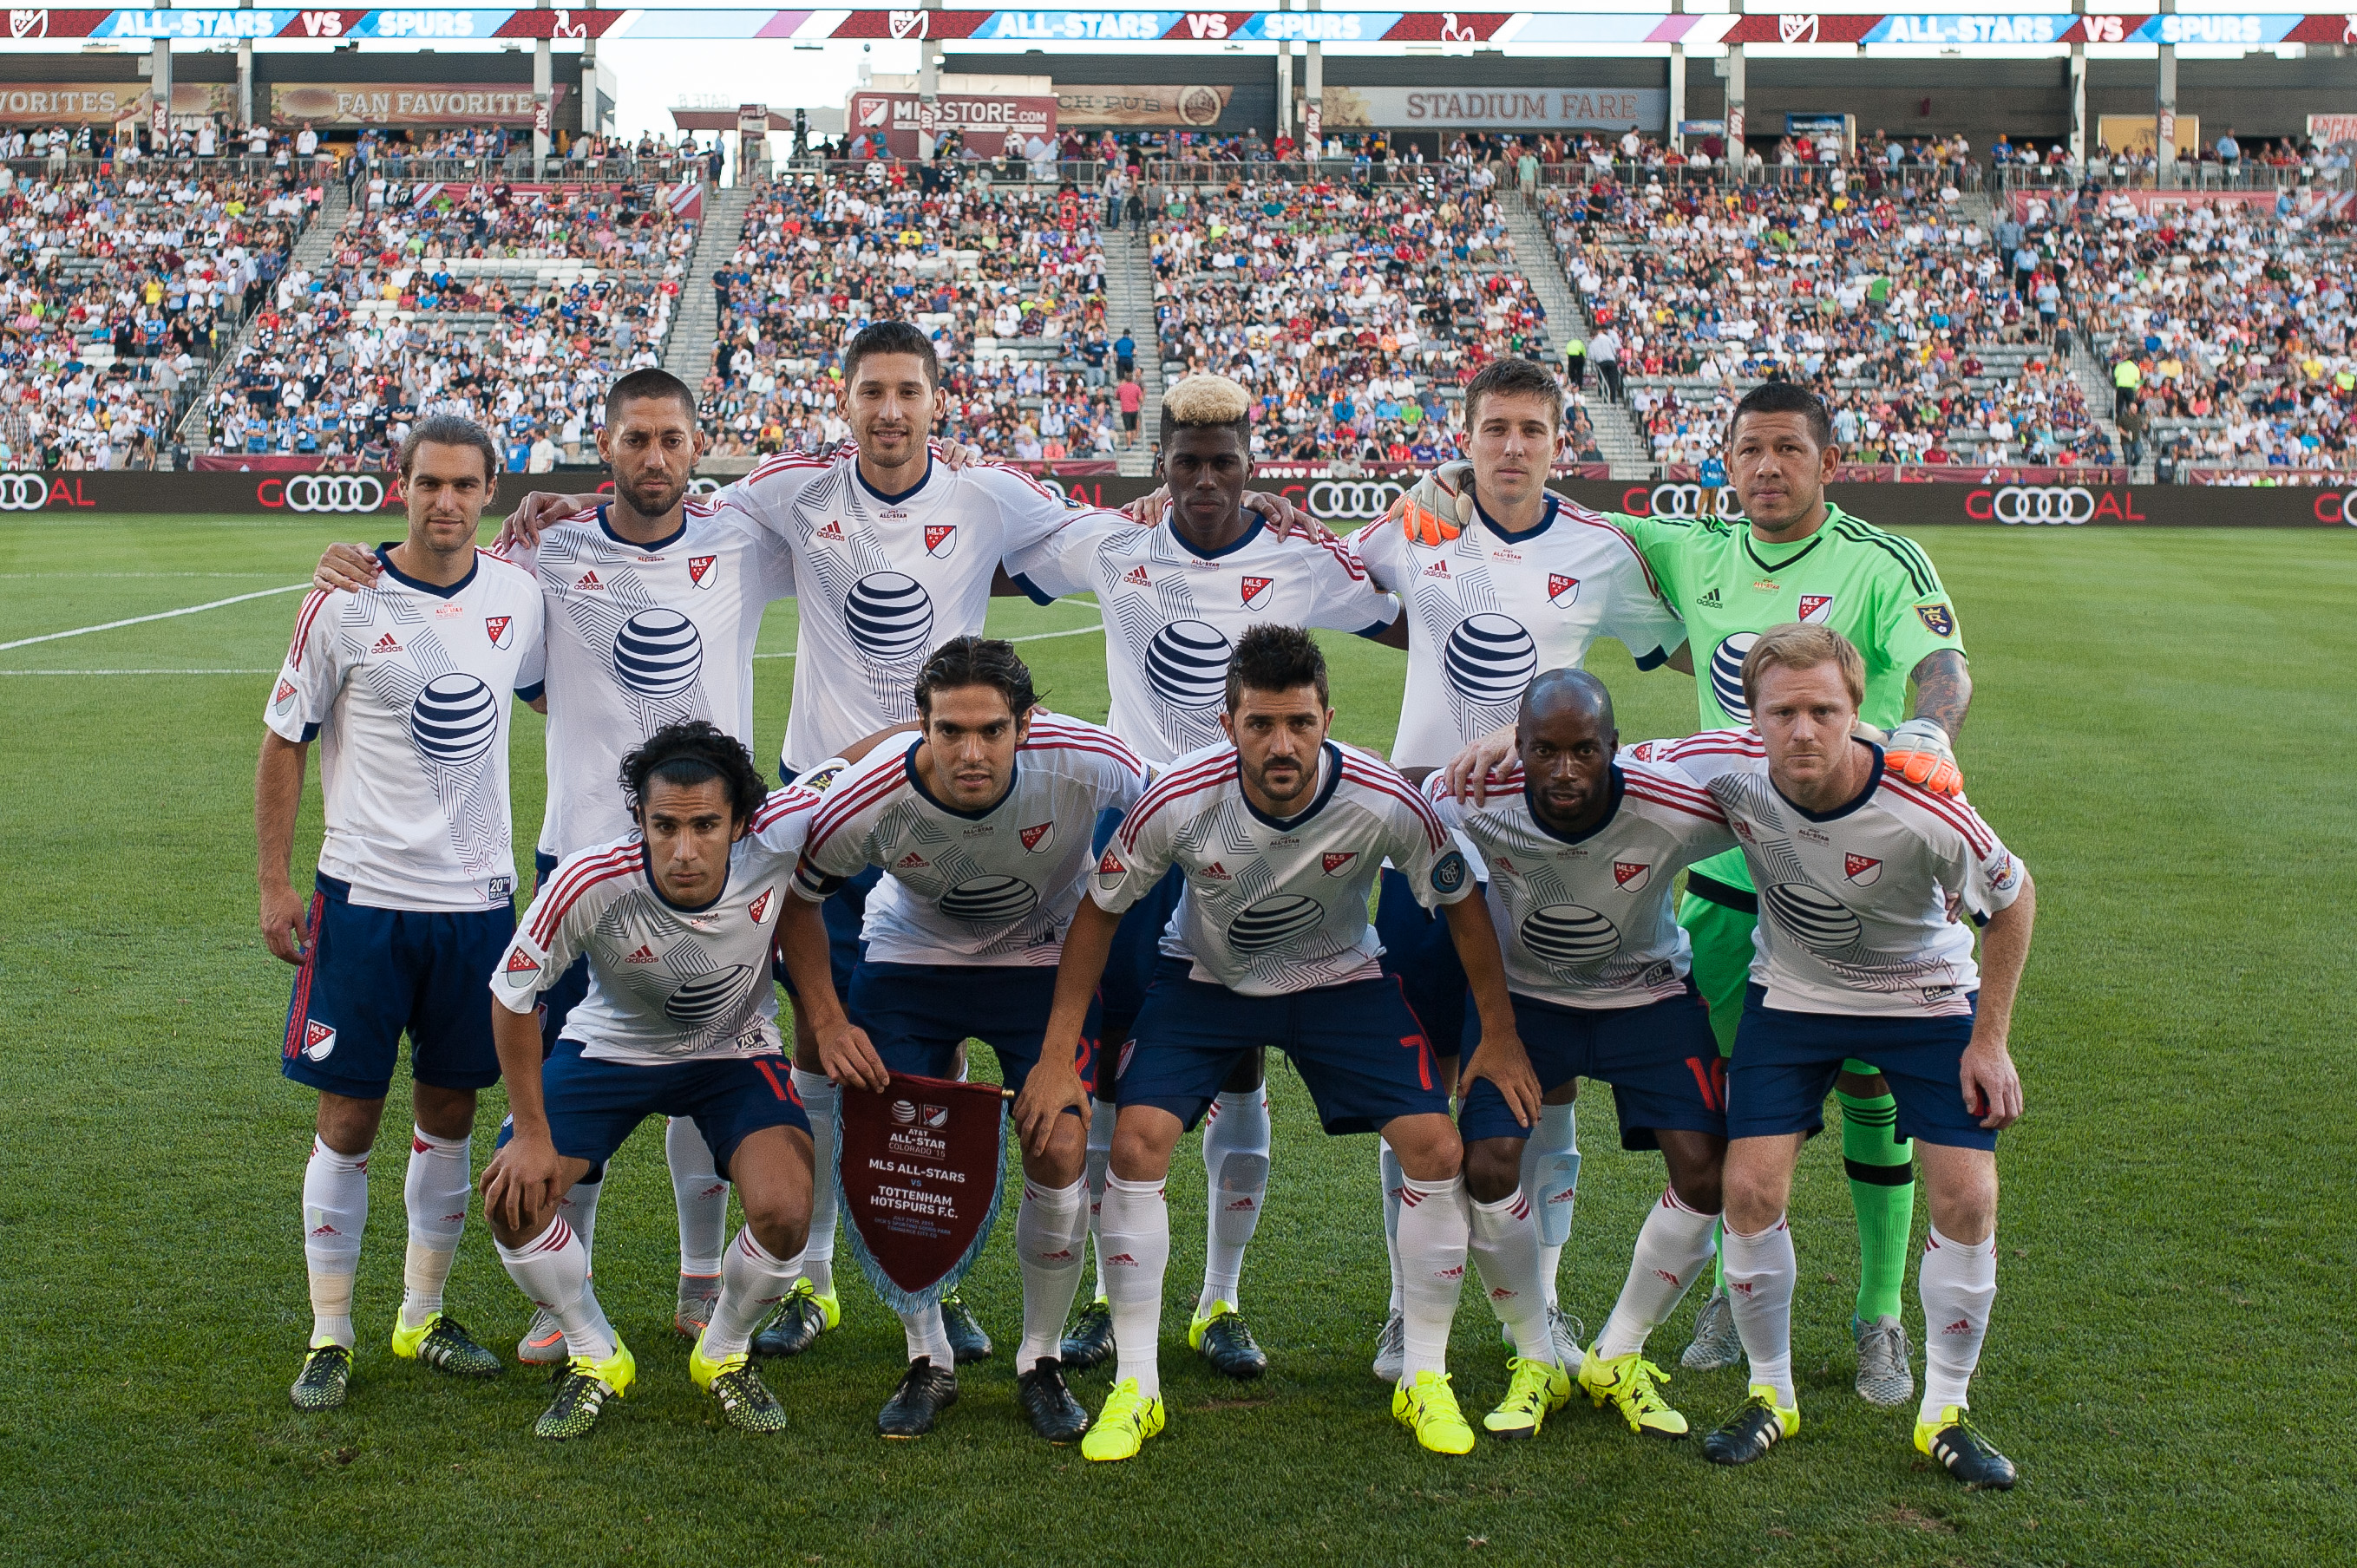 COMMERCE CITY, CO - JULY 29:     MLS All-Stars pose for a group photo before the 2015 AT&T Major League Soccer All-Star game at Dick's Sporting Goods Park on July 29, 2015 in Commerce City, Colorado.  (Photo by Dustin Bradford/Getty Images)